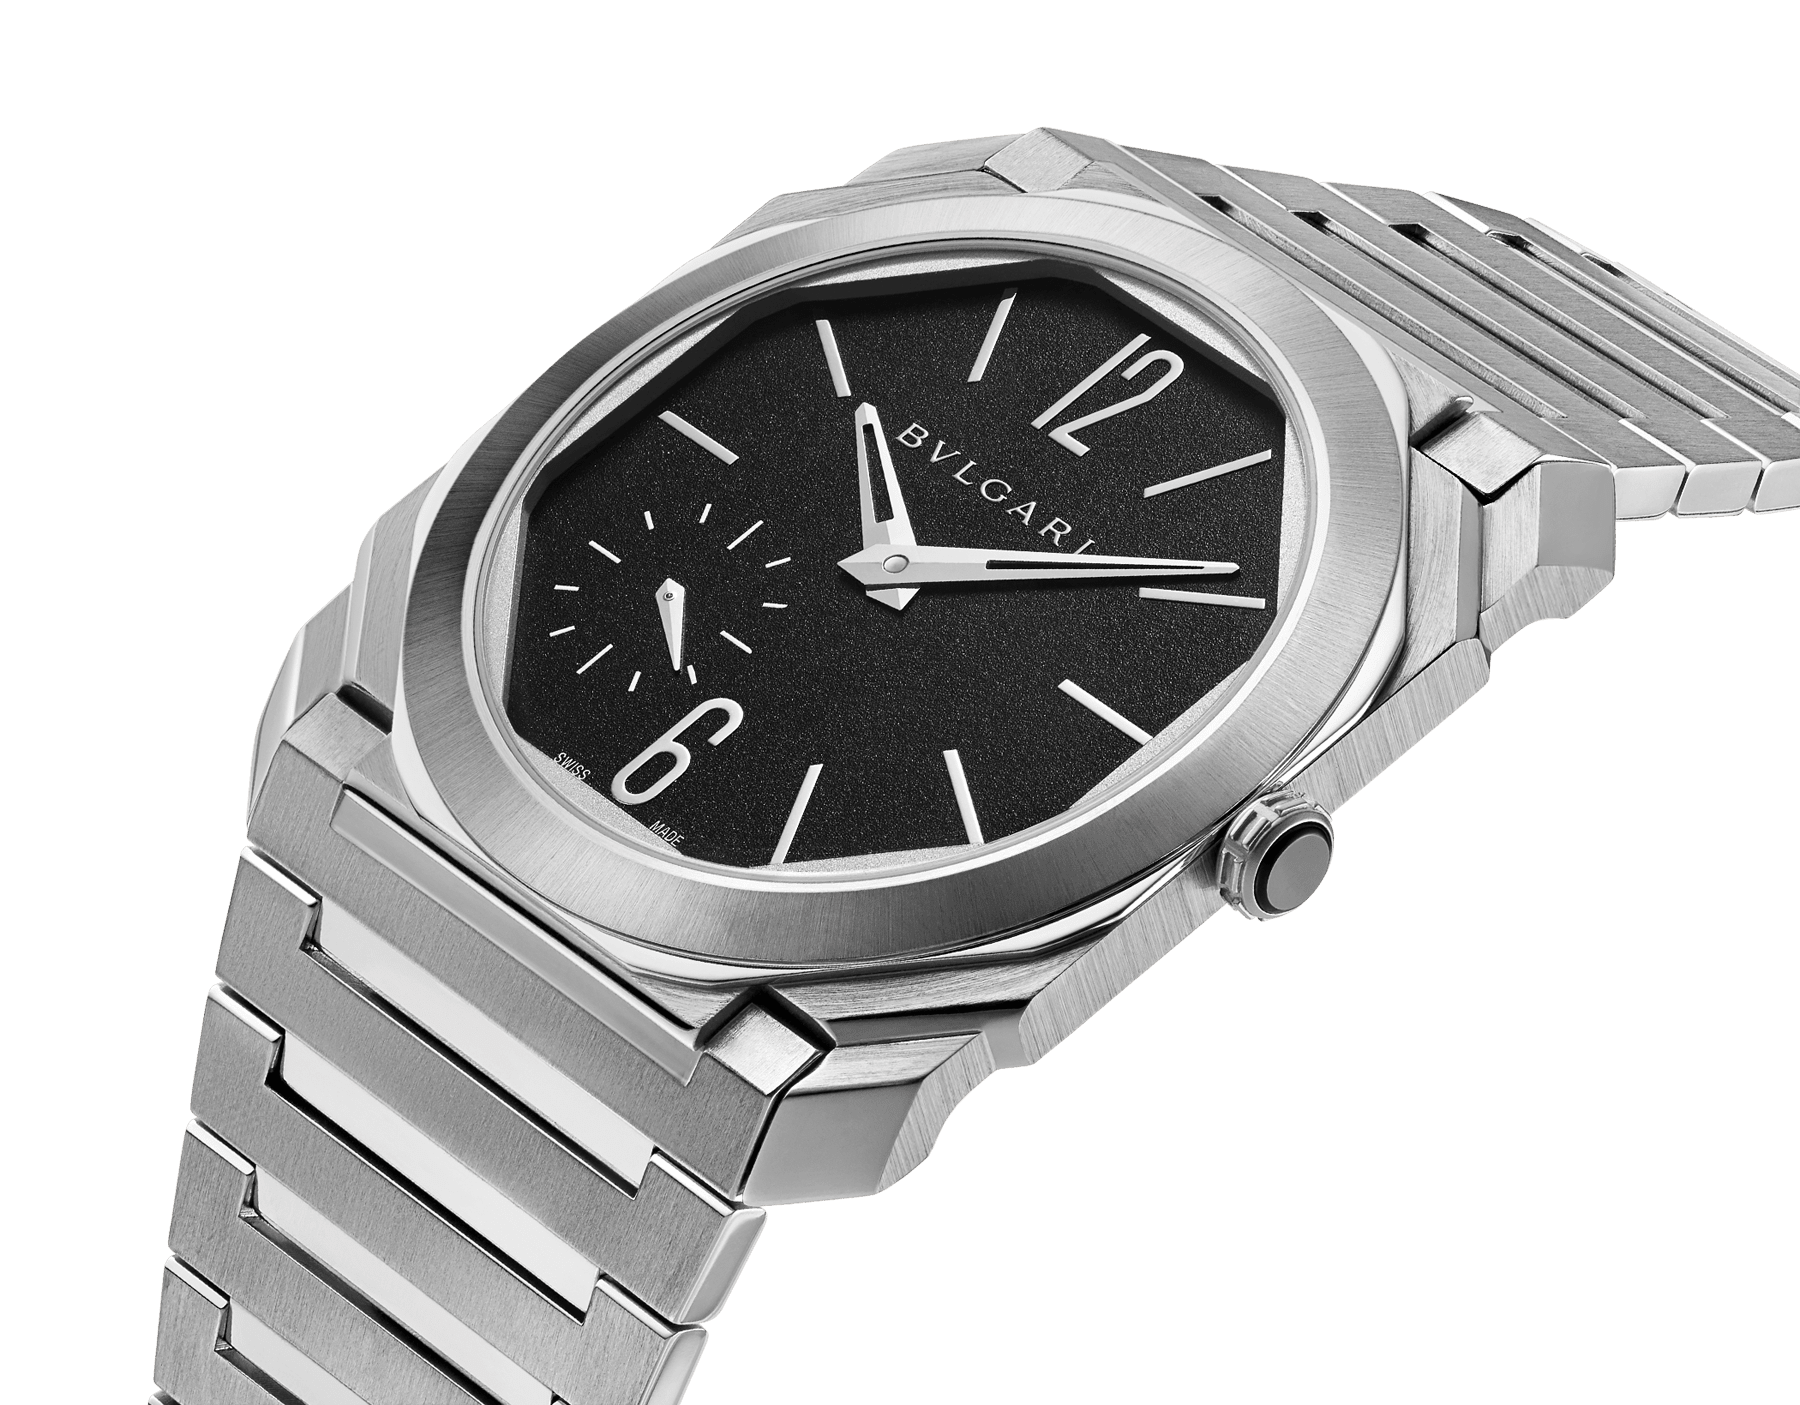 Octo Finissimo Automatic watch with mechanical manufacture movement, automatic winding, platinum microrotor, small seconds, extra-thin satin-polished stainless steel case and bracelet, transparent case back and black matte dial. Water-resistant up to 100 metres 103297 image 2